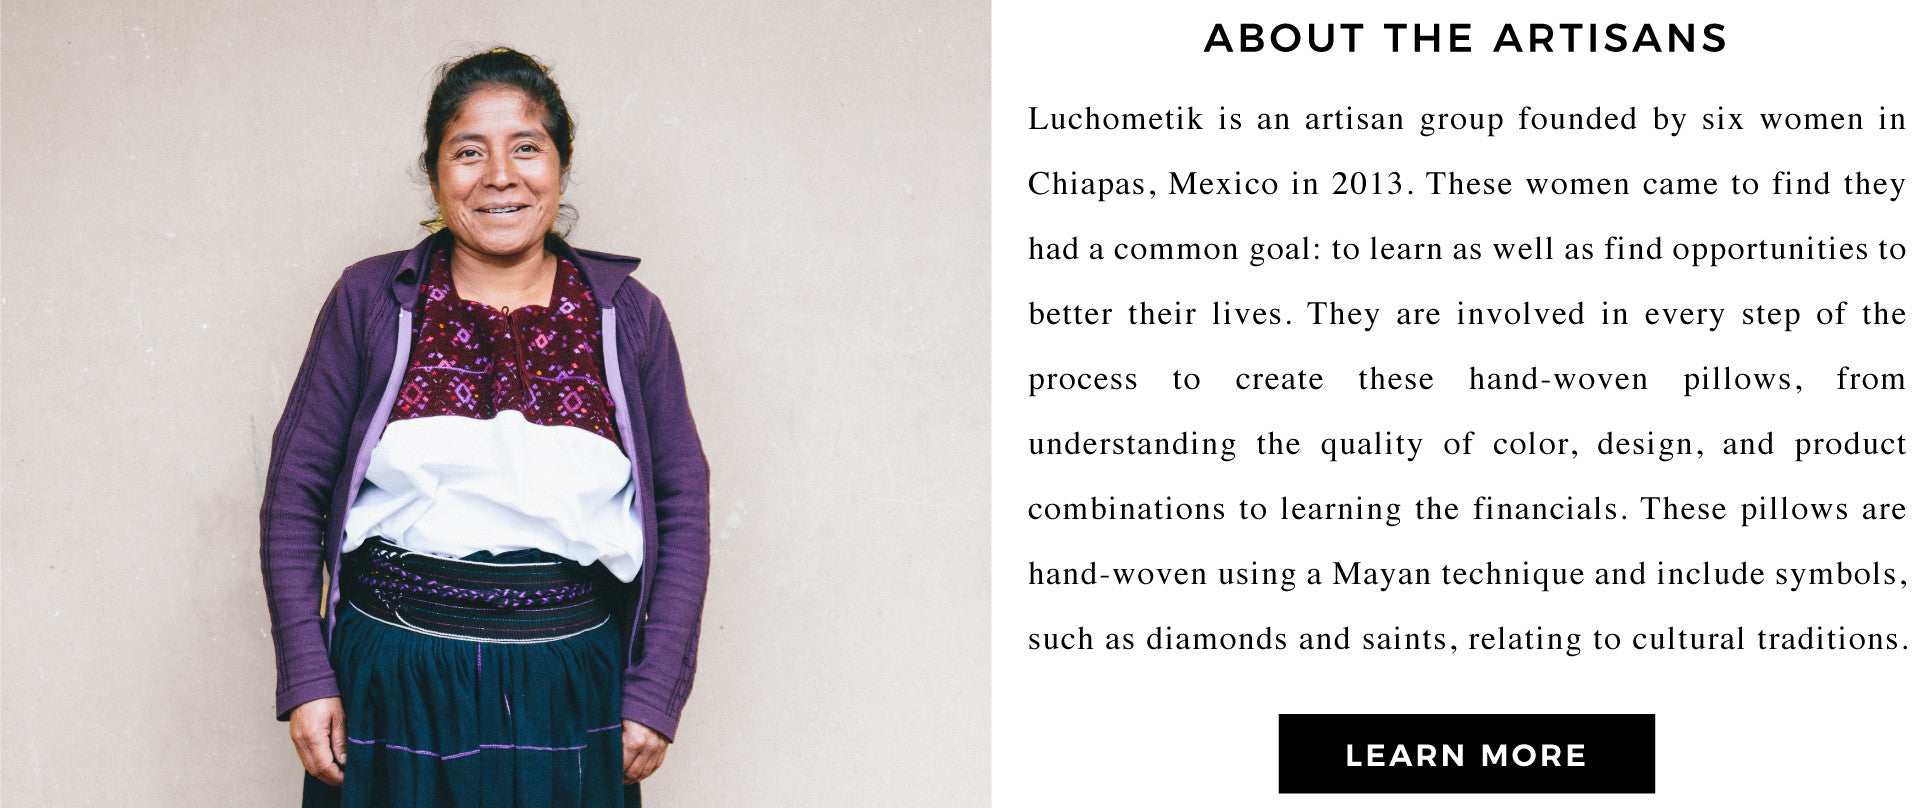 Read about Luchometik